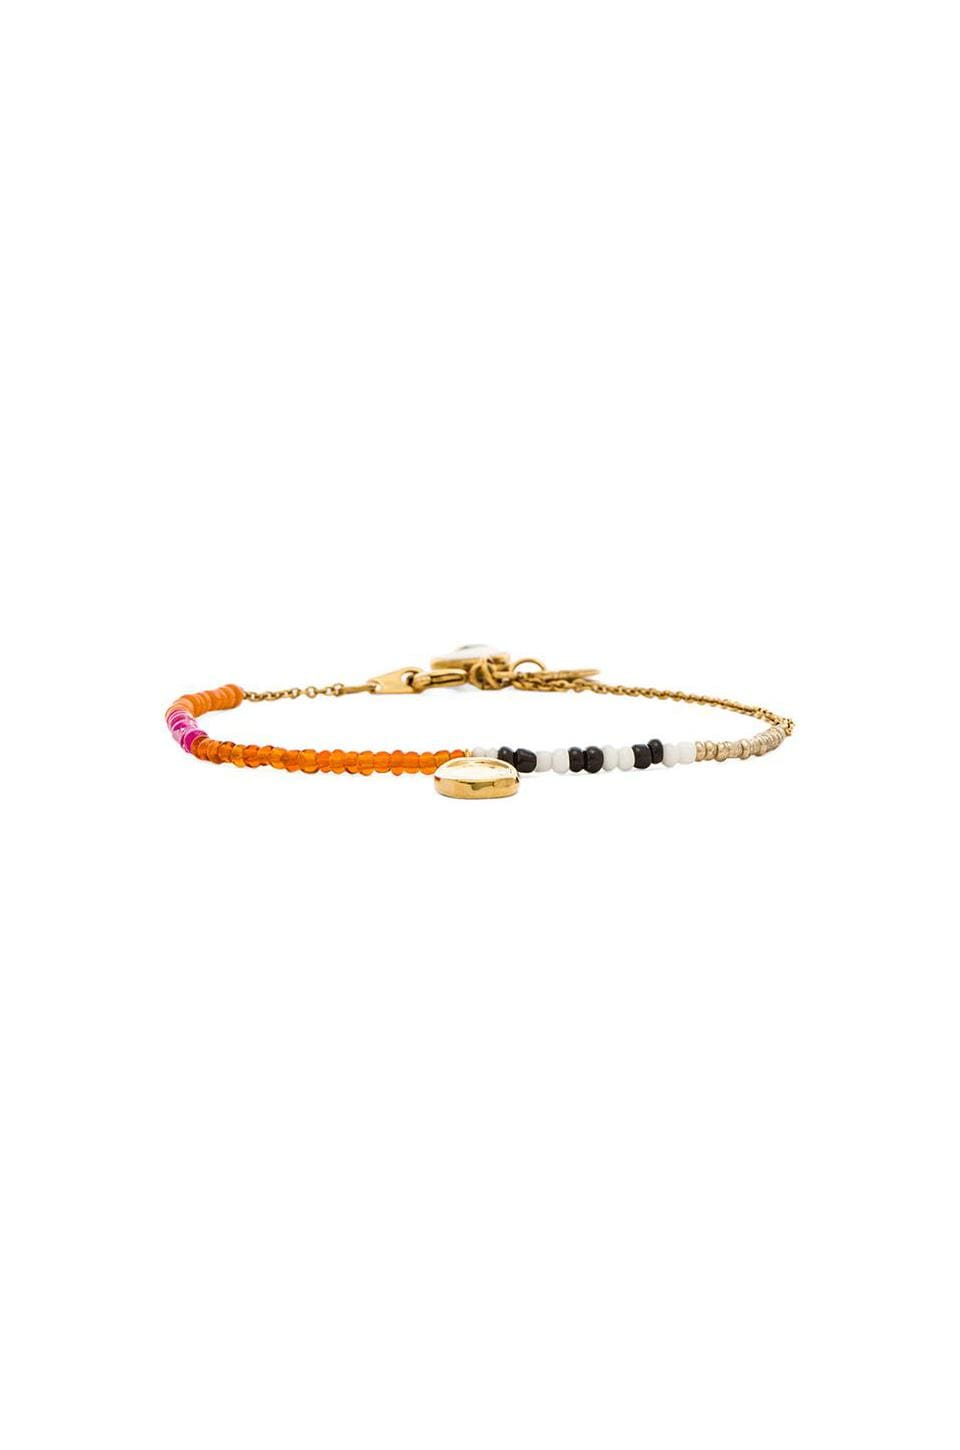 Marc by Marc Jacobs Grab & Go Safety Bead Single Strand Bracelet in Red Multi & Oro